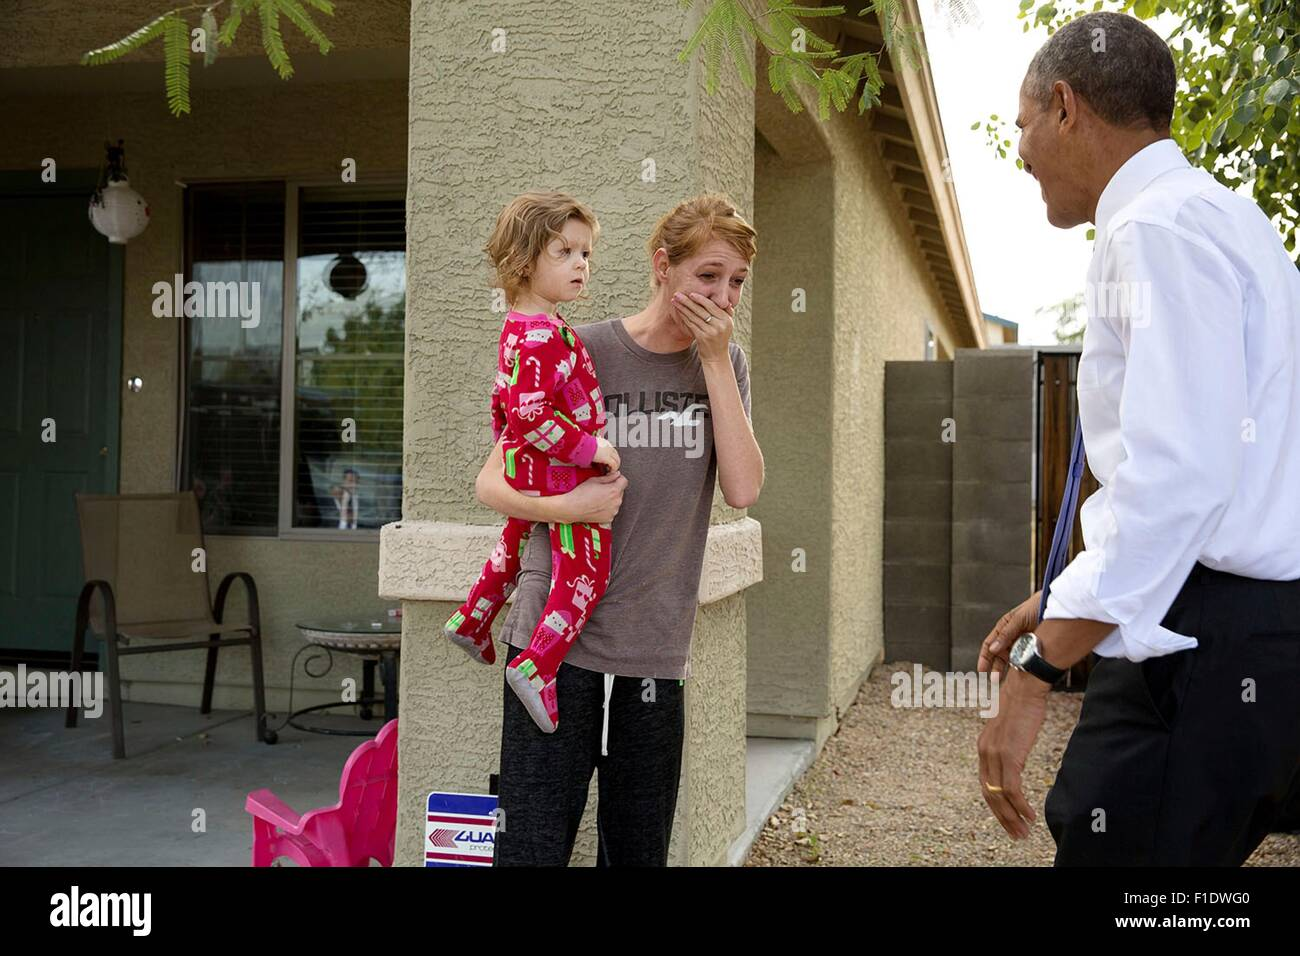 U.S. President Barack Obama surprises a neighbor living the Nueva Villas at Beverly, a single-family housing development - Stock Image